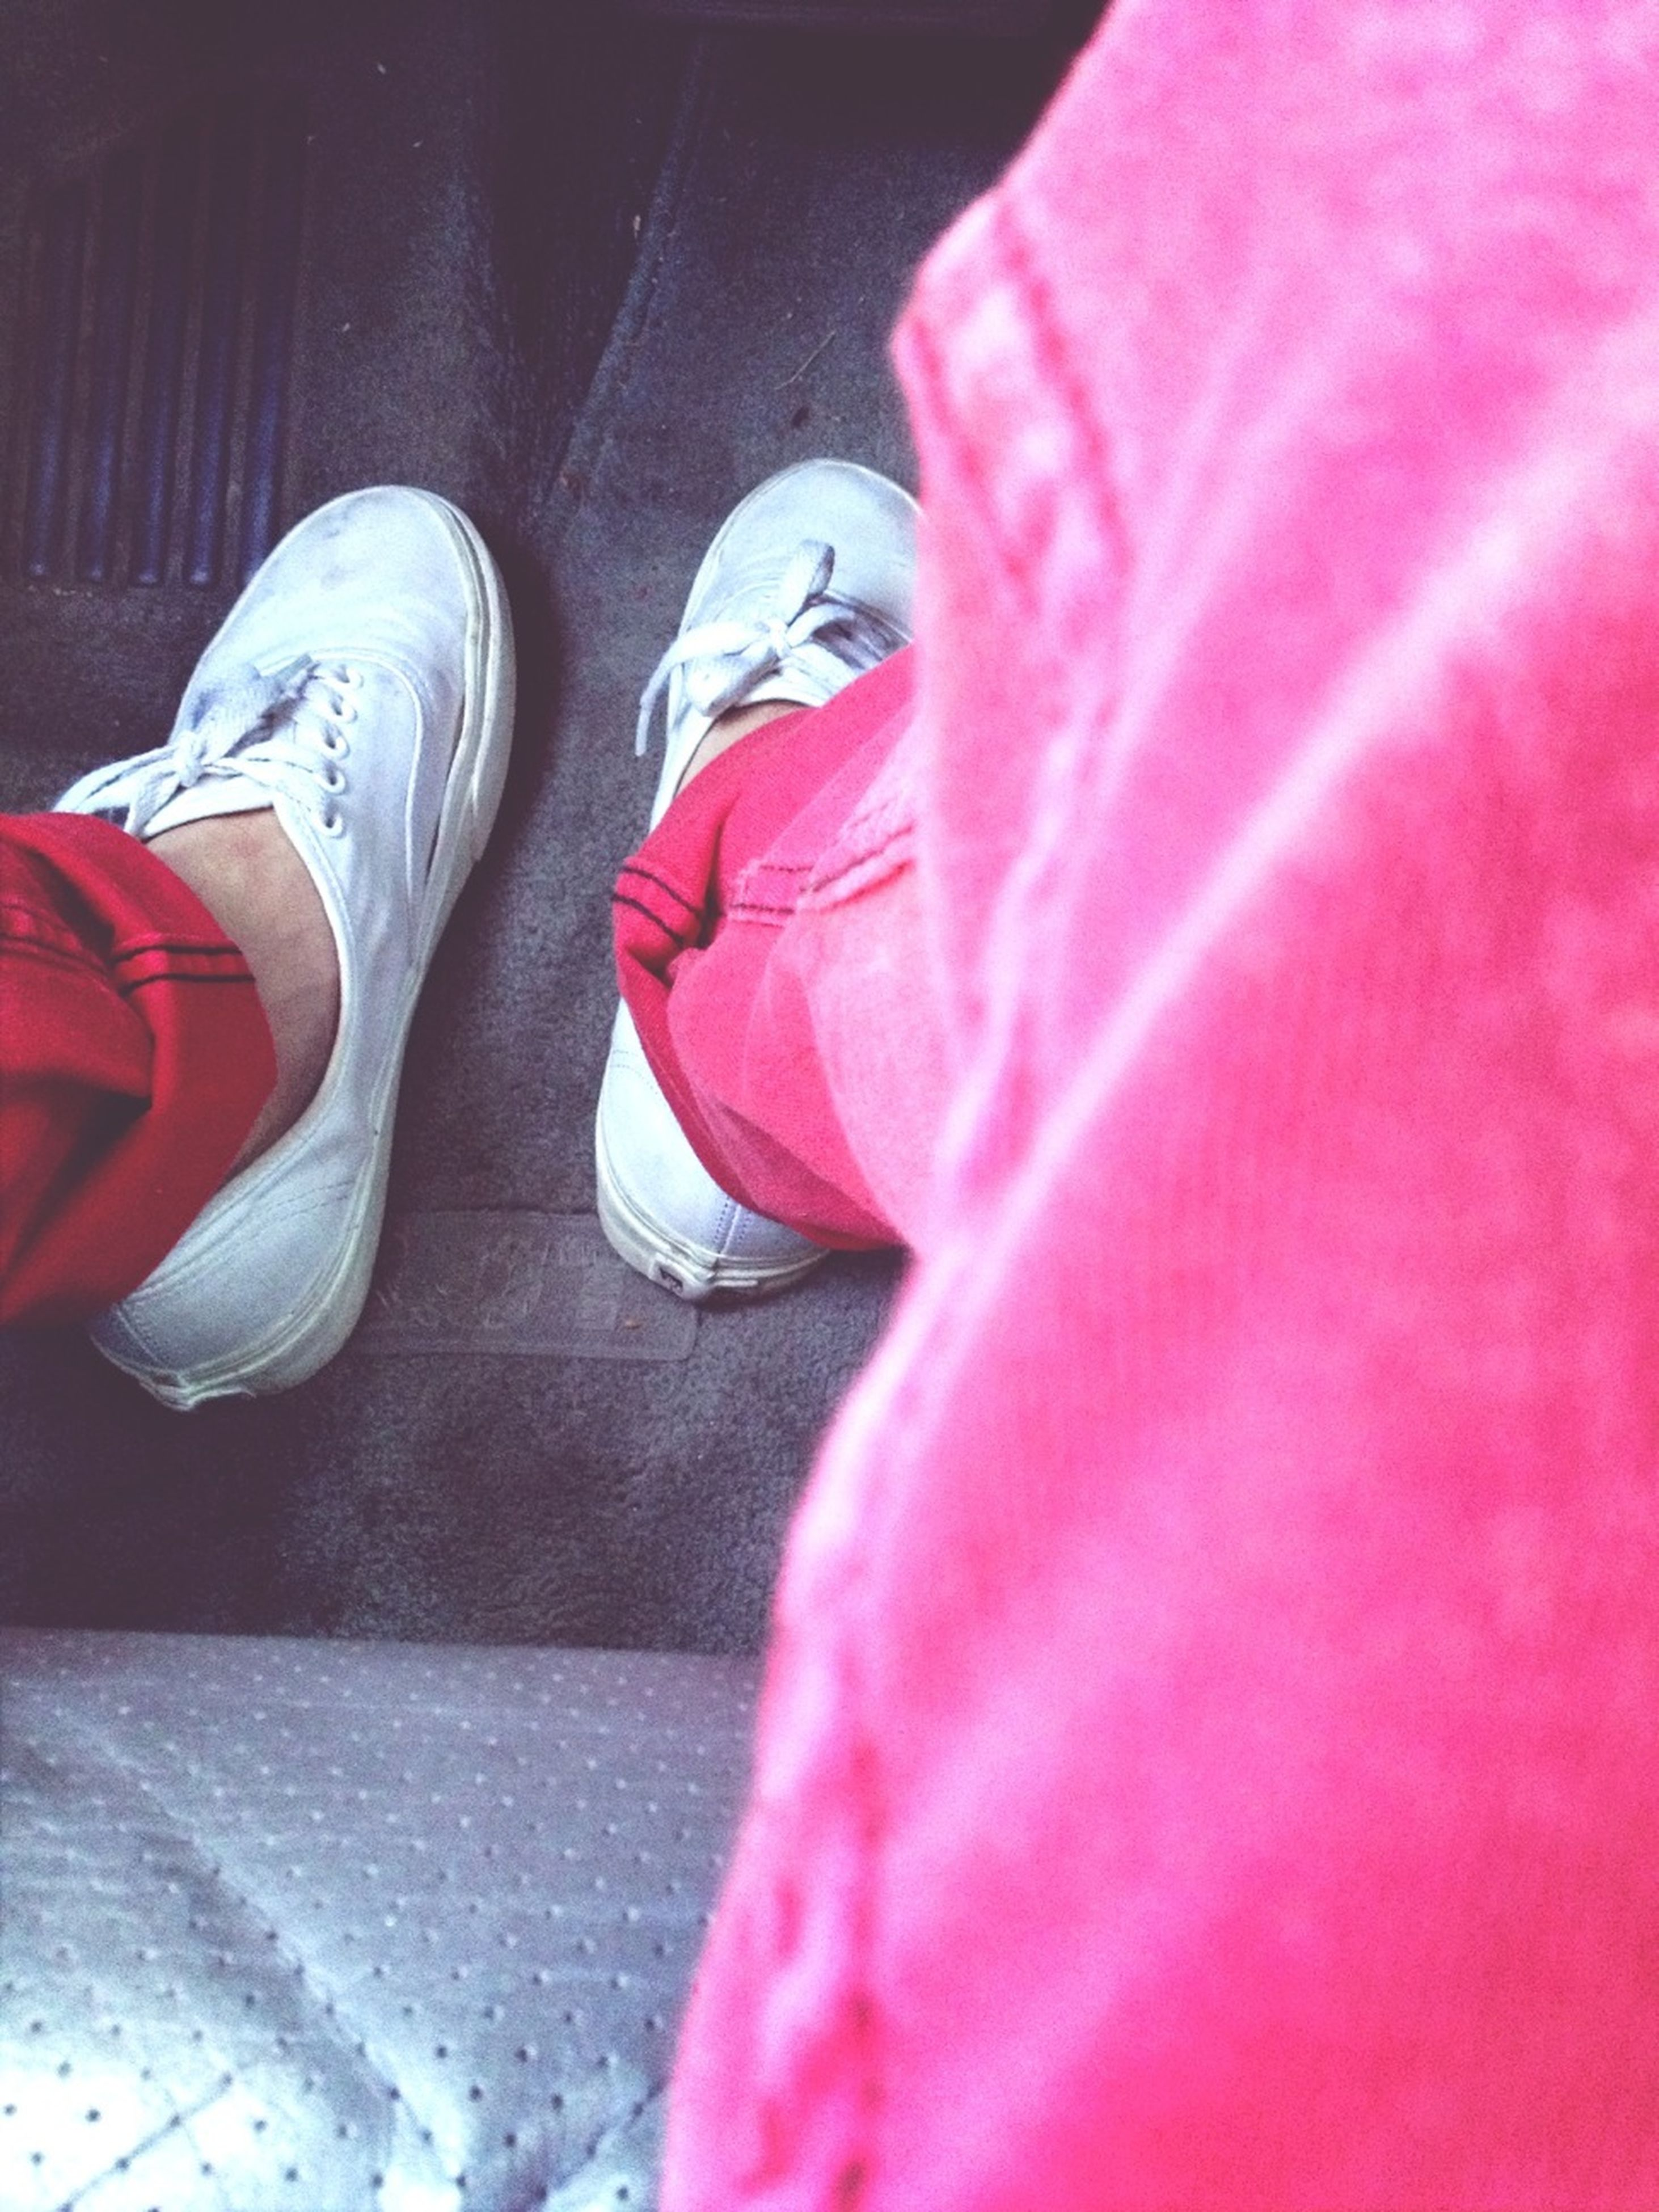 pink color, low section, shoe, red, clothing, person, indoors, fabric, close-up, footwear, textile, relaxation, standing, jeans, multi colored, day, selective focus, rear view